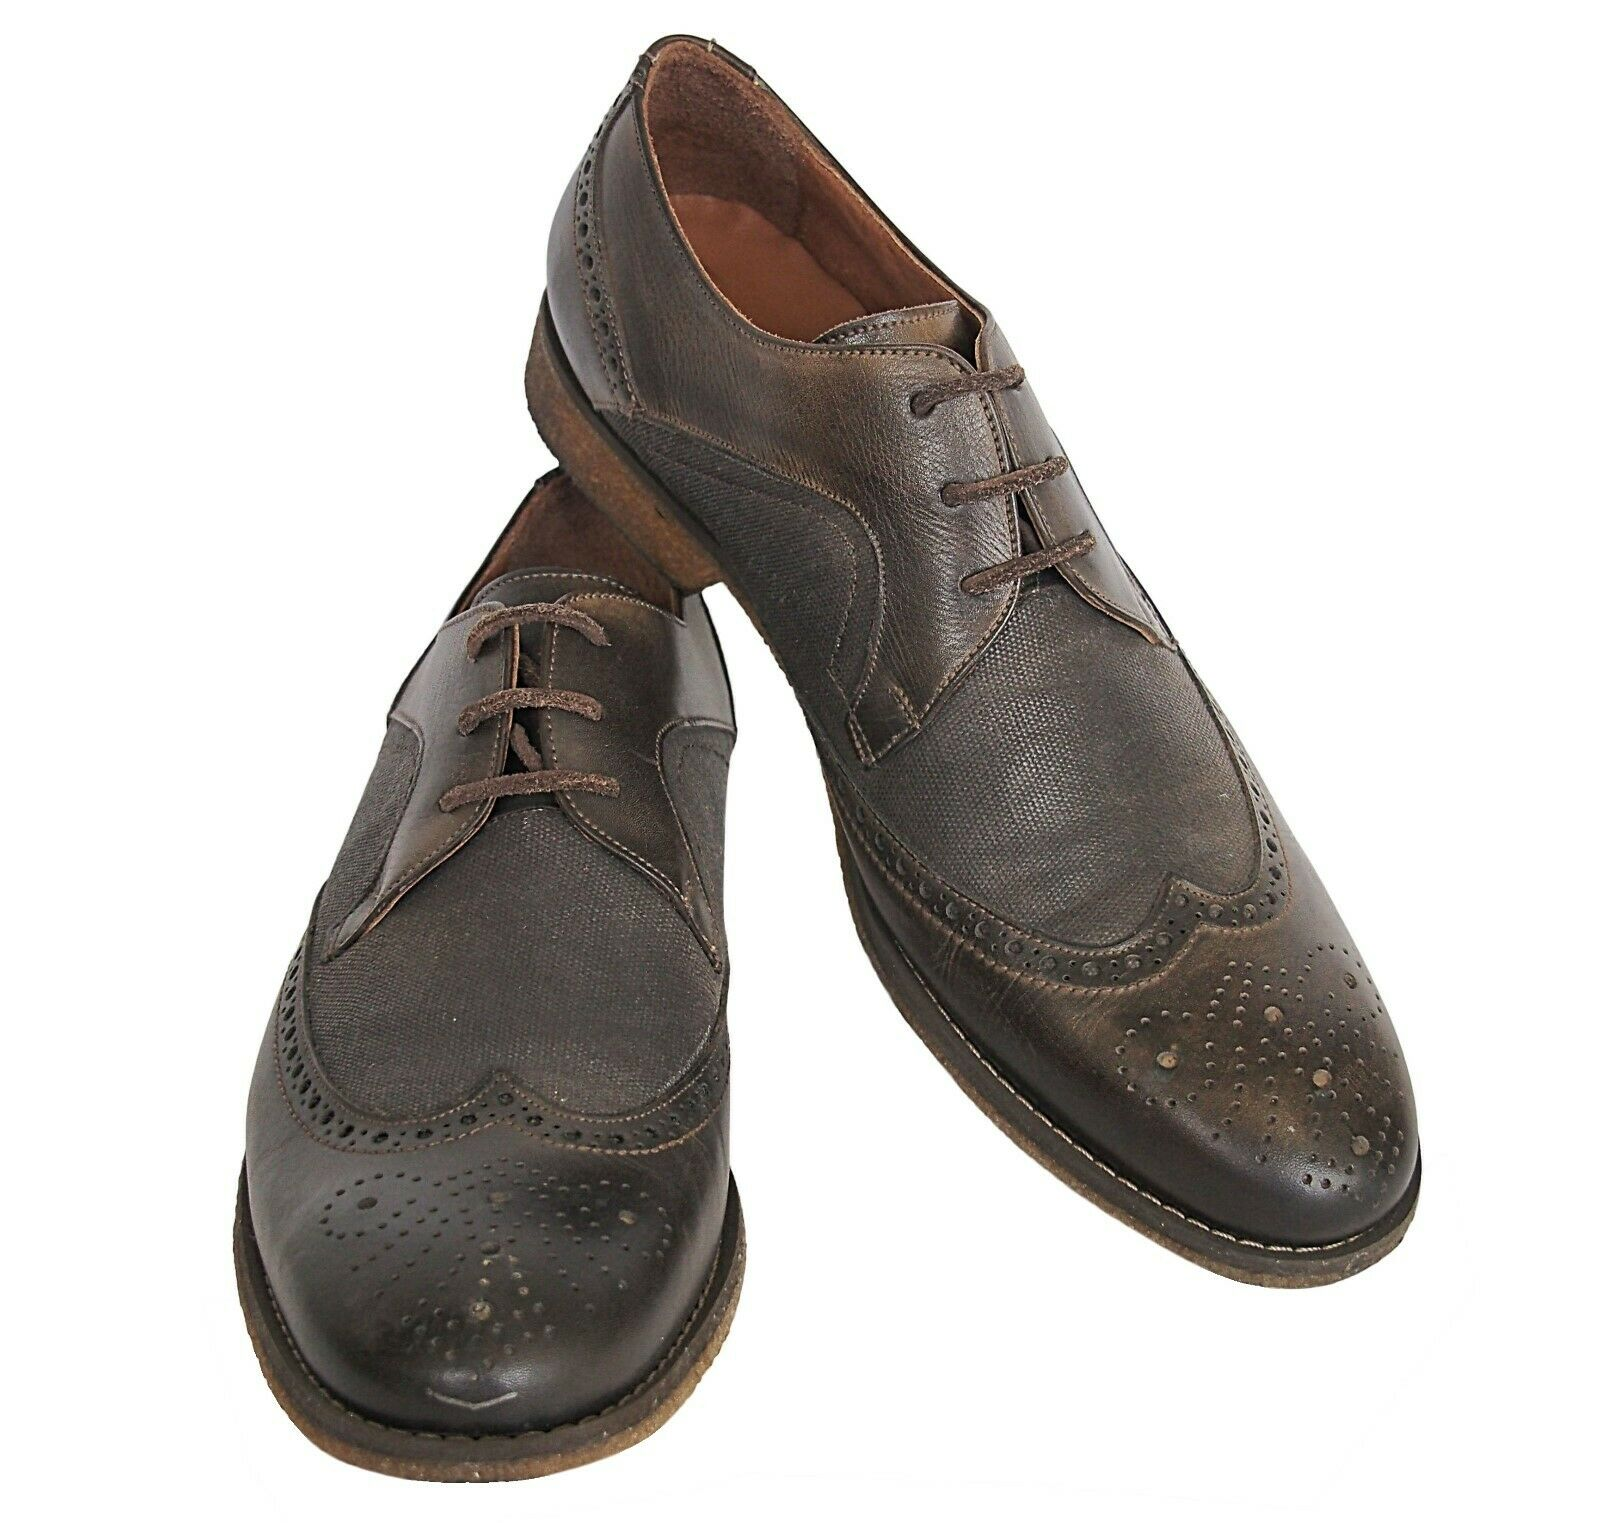 JOHN VARVATOS Wingtip Canvas Leather Shoes Brown S